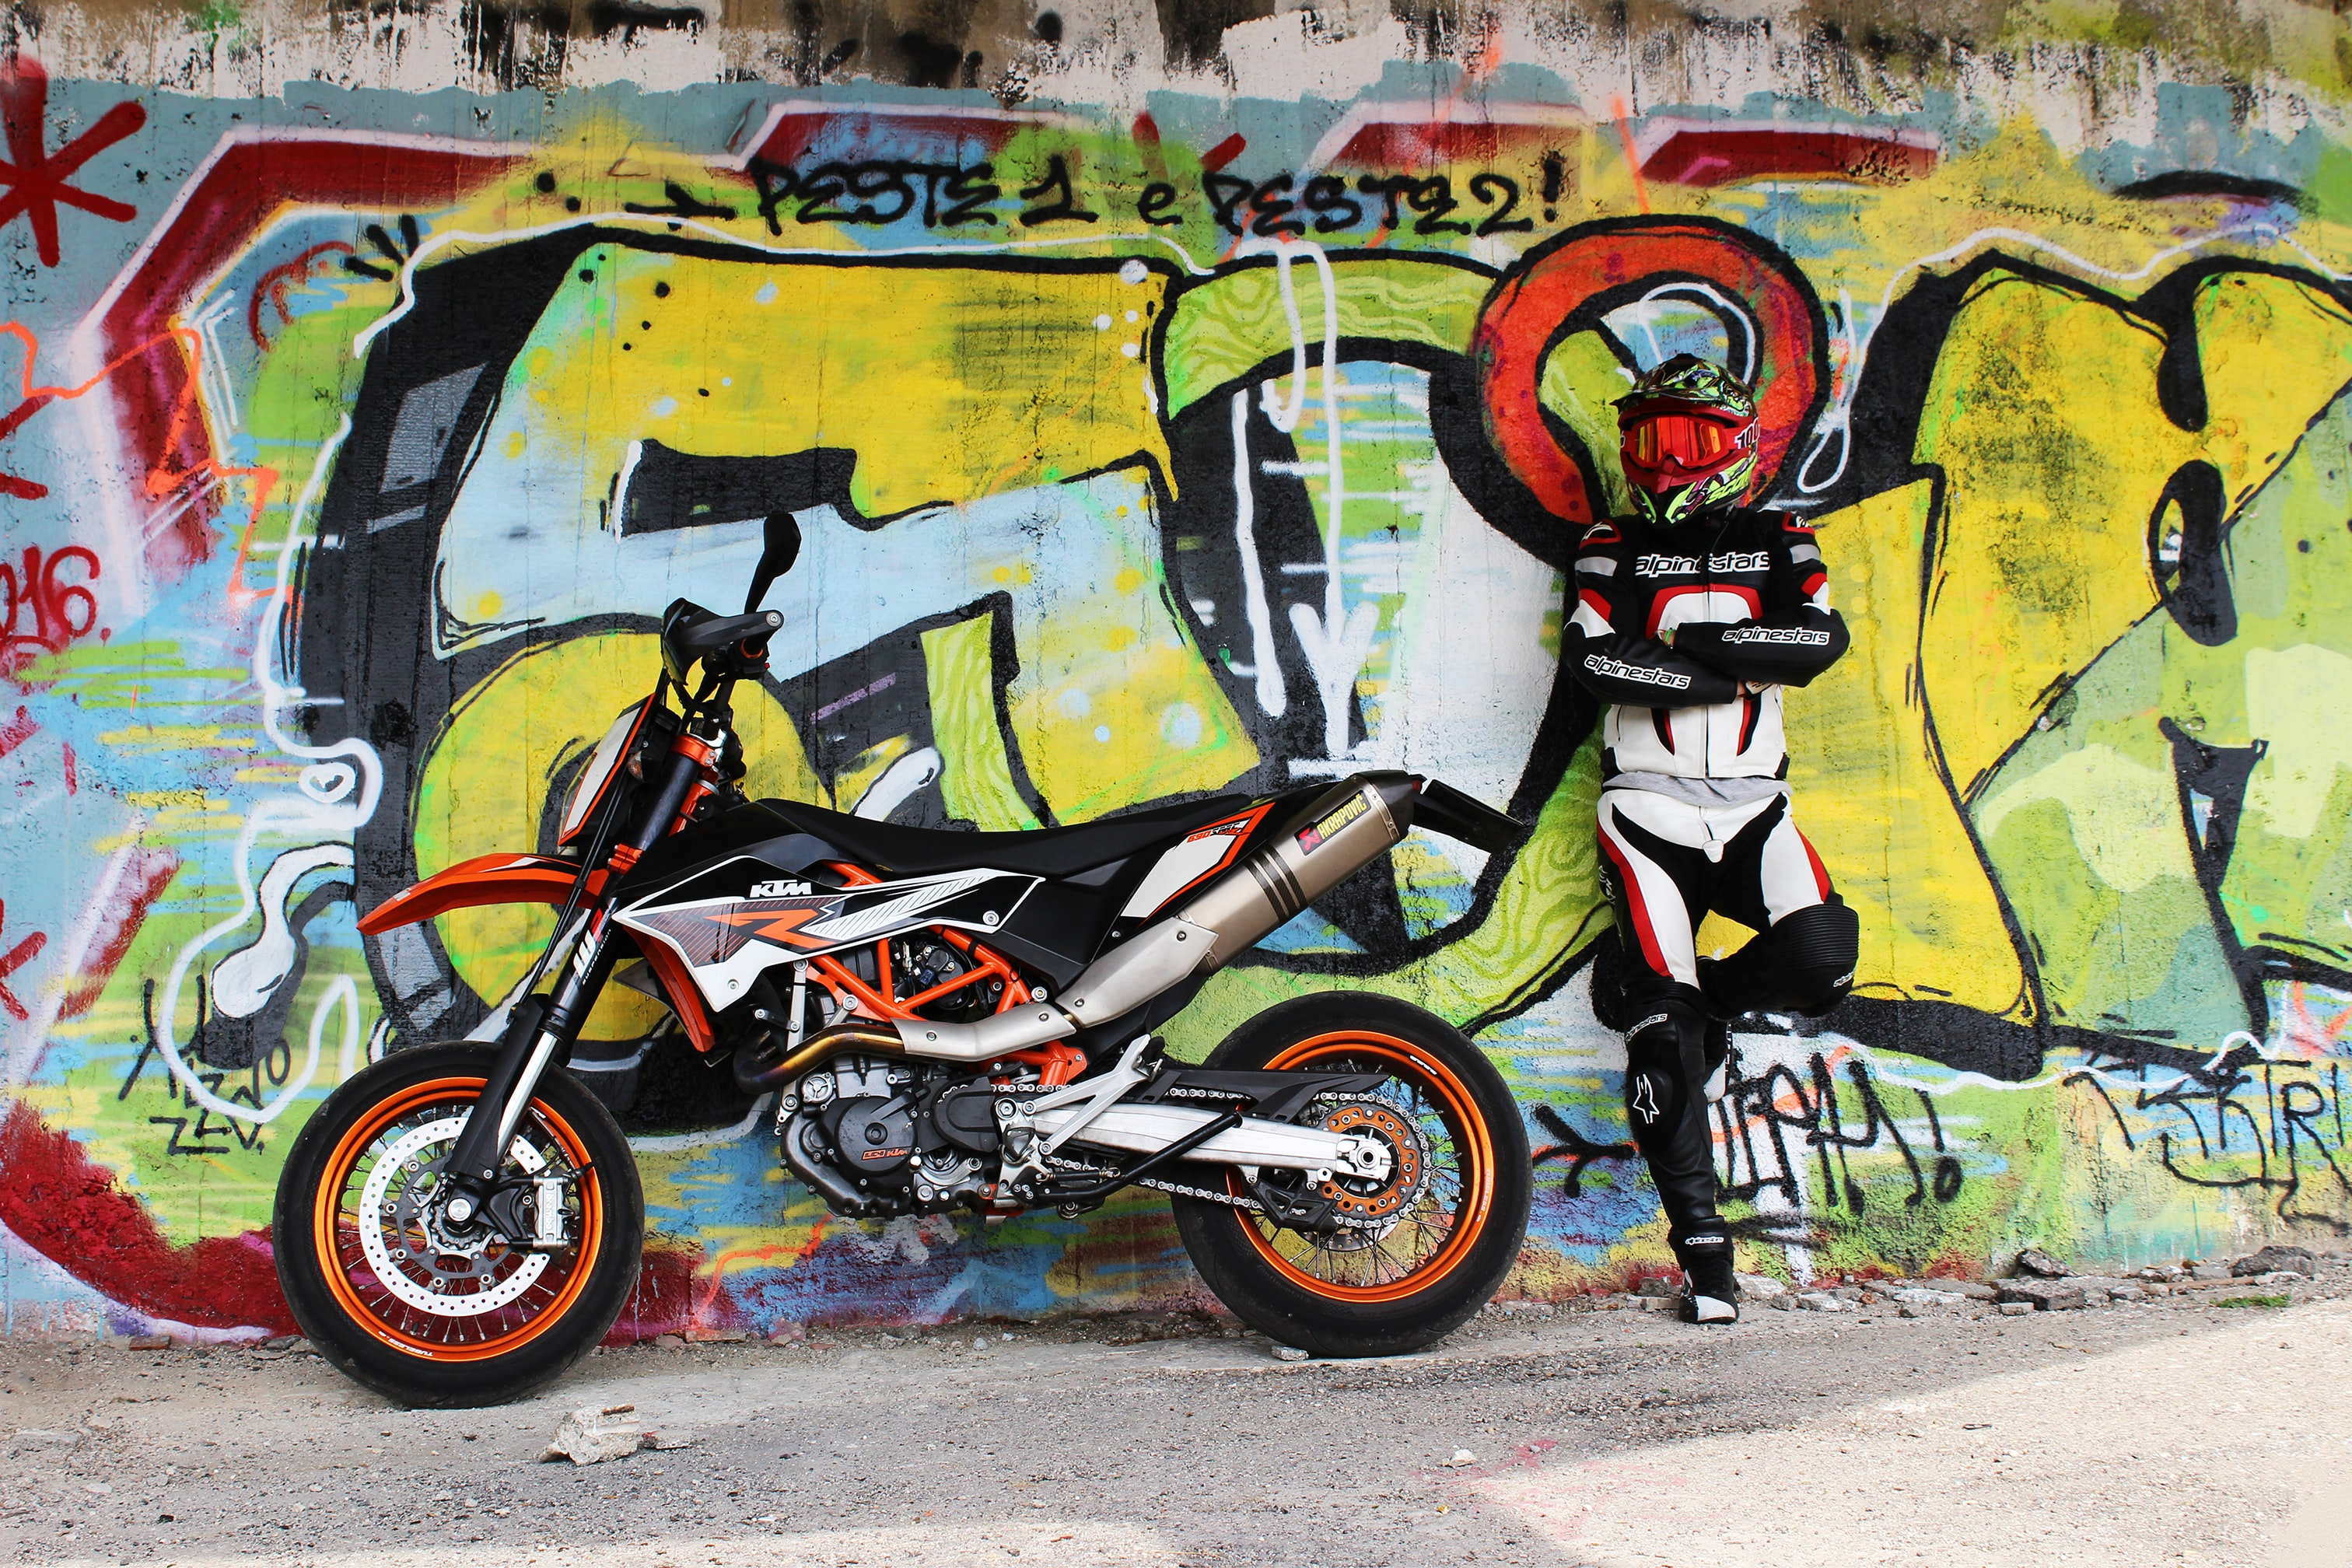 Motorbike and rider in crash helmet leaning against graffiti street art in Consonno